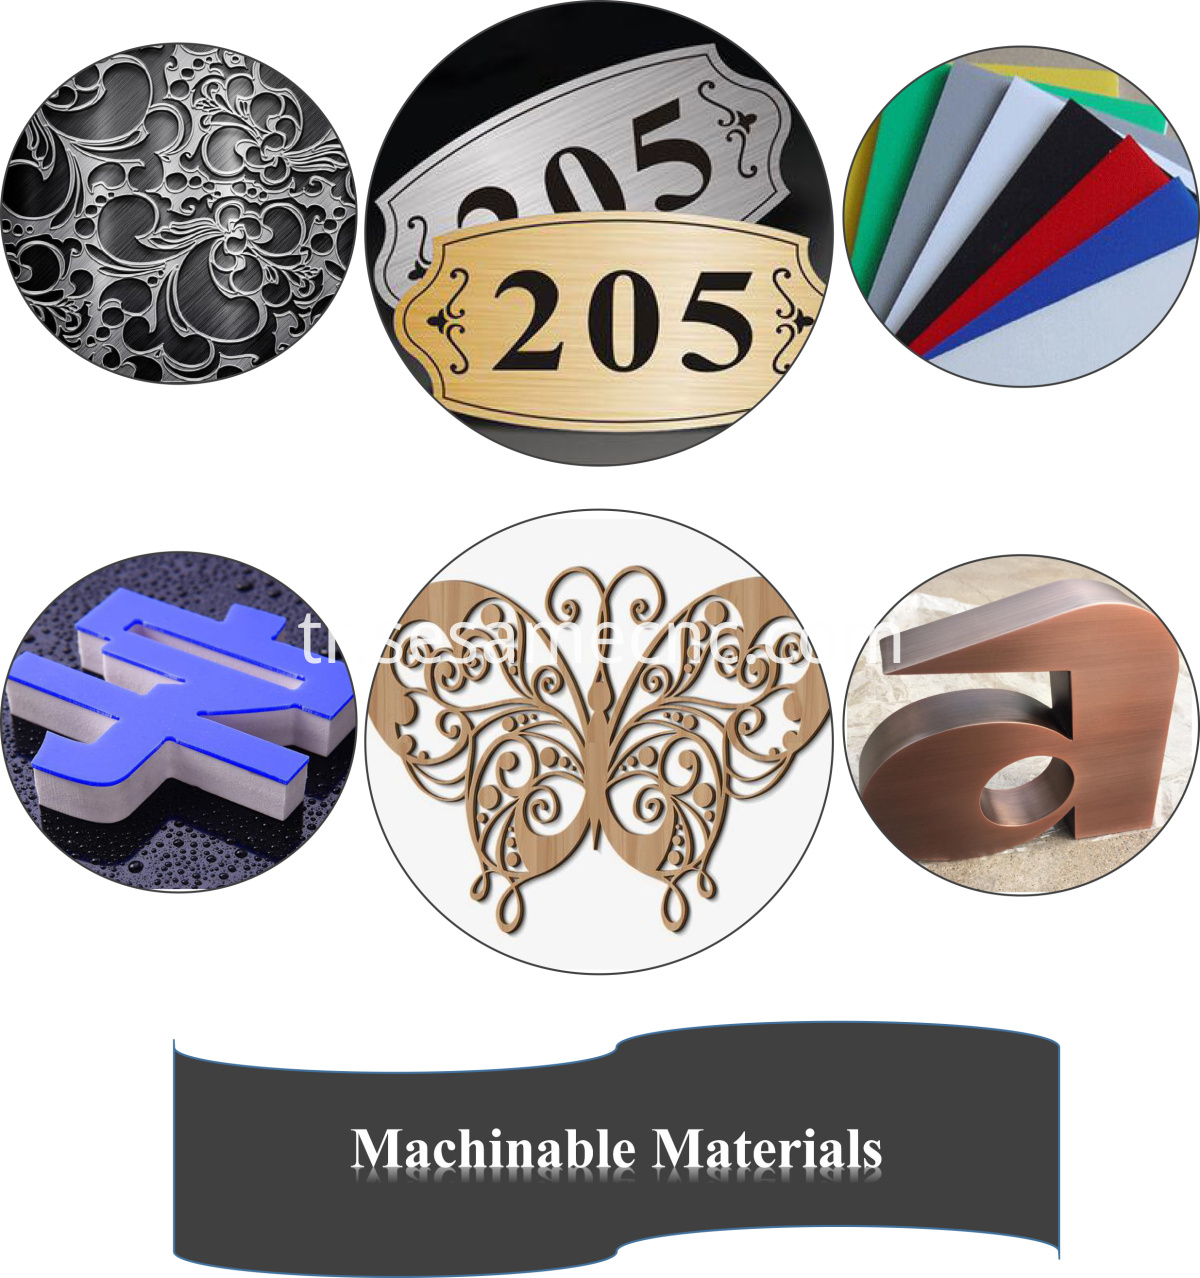 A Machinable Materials